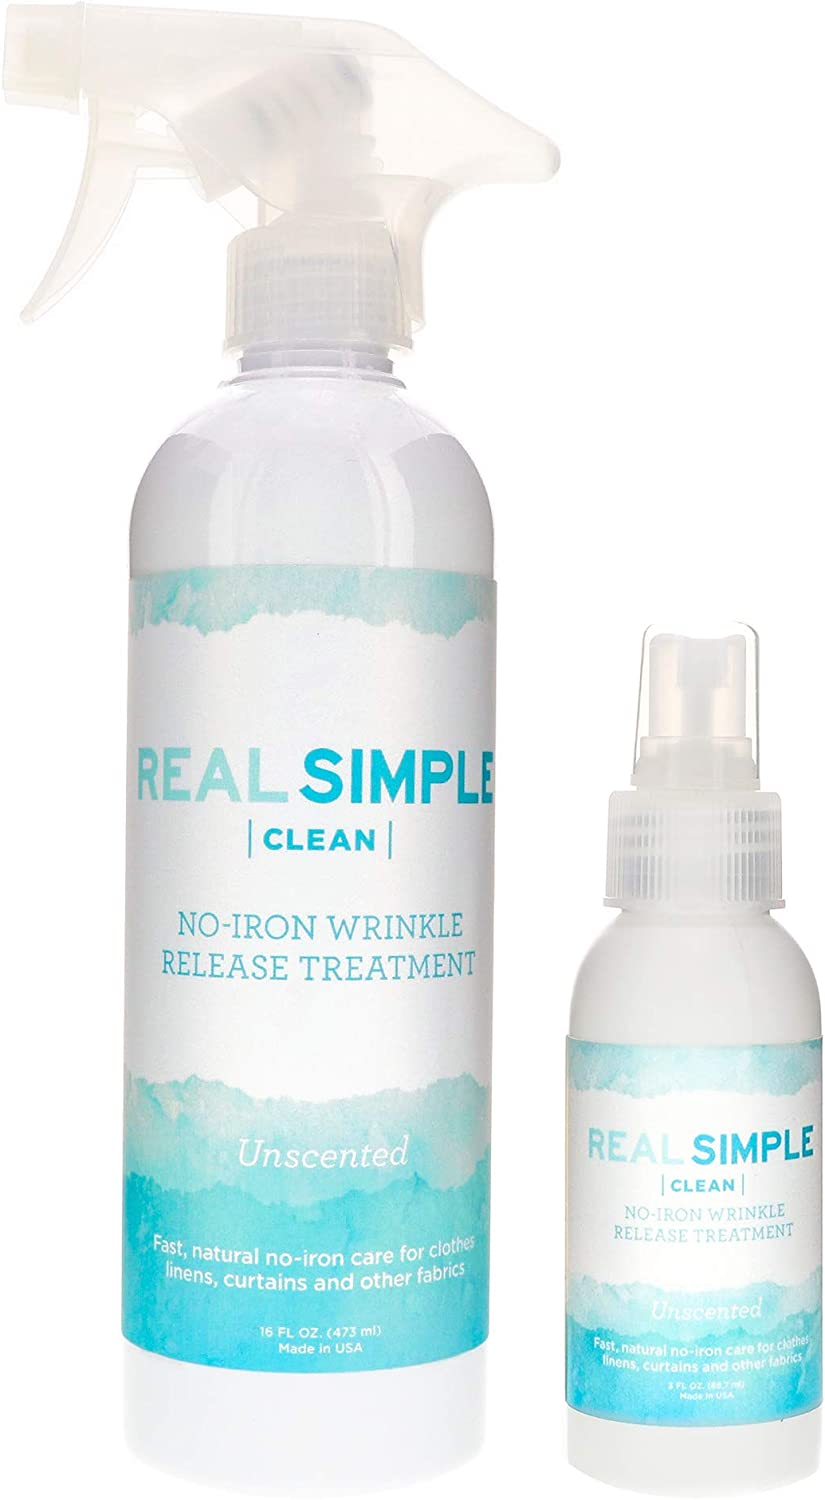 Real Simple Clean Wrinkle Release, Static Cling Remover, Pillow & Fabric Freshener, Out The Door No-Iron Quick Fix, USDA Certified Bio-Based & Biodegradable (Unscented, 16 oz. and 3 oz.)